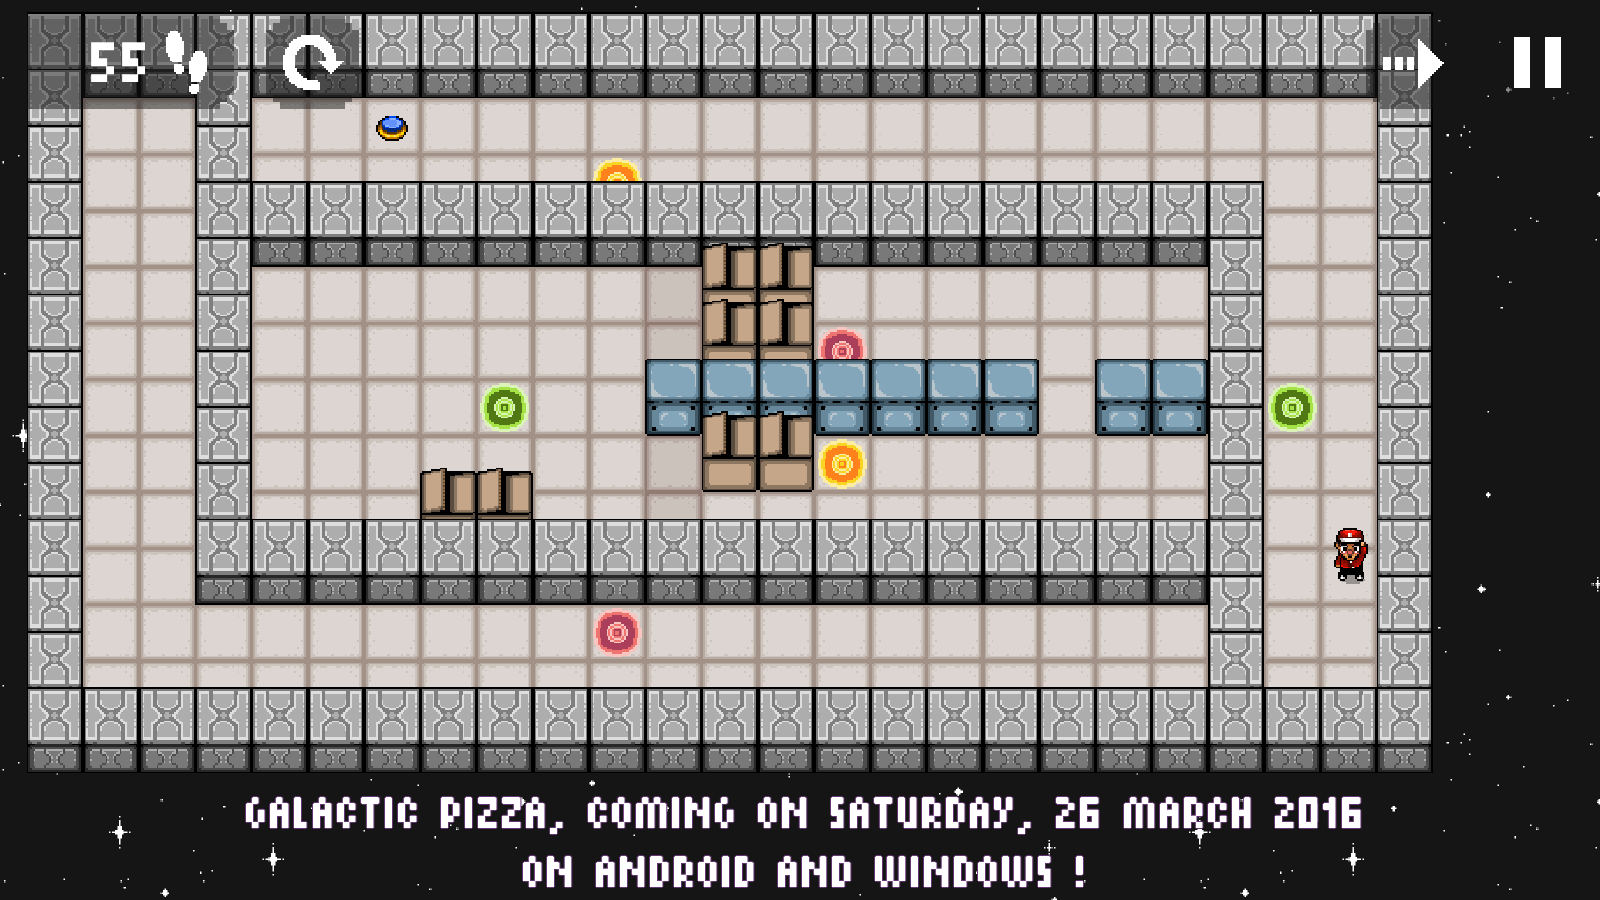 Galactic Pizza release date